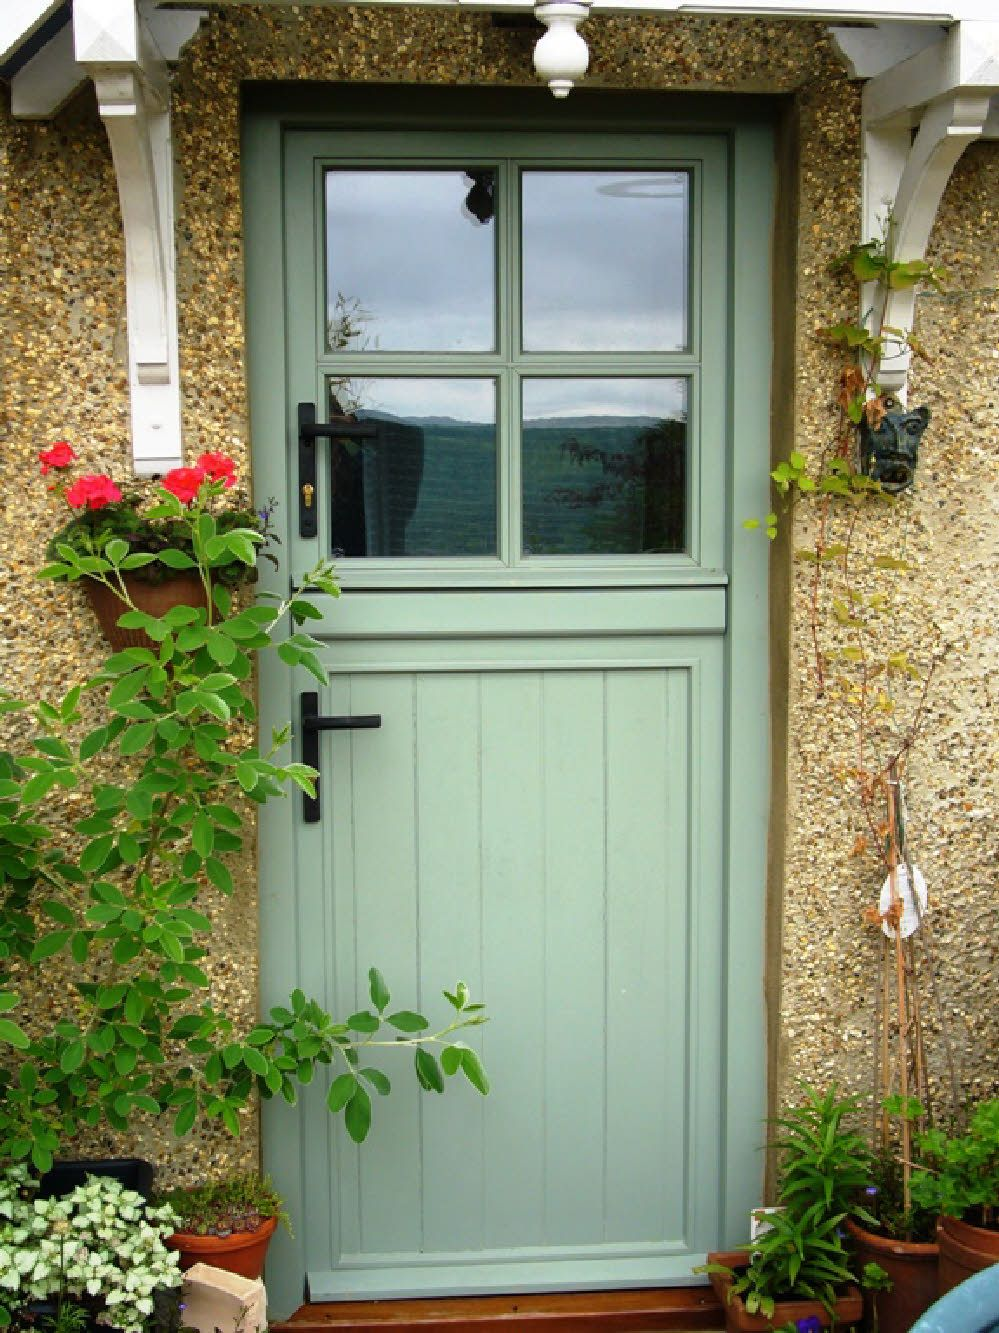 ELLWOOD Stable Doors, Traditional, Bespoke, Hand Made, Timber, Wood ...